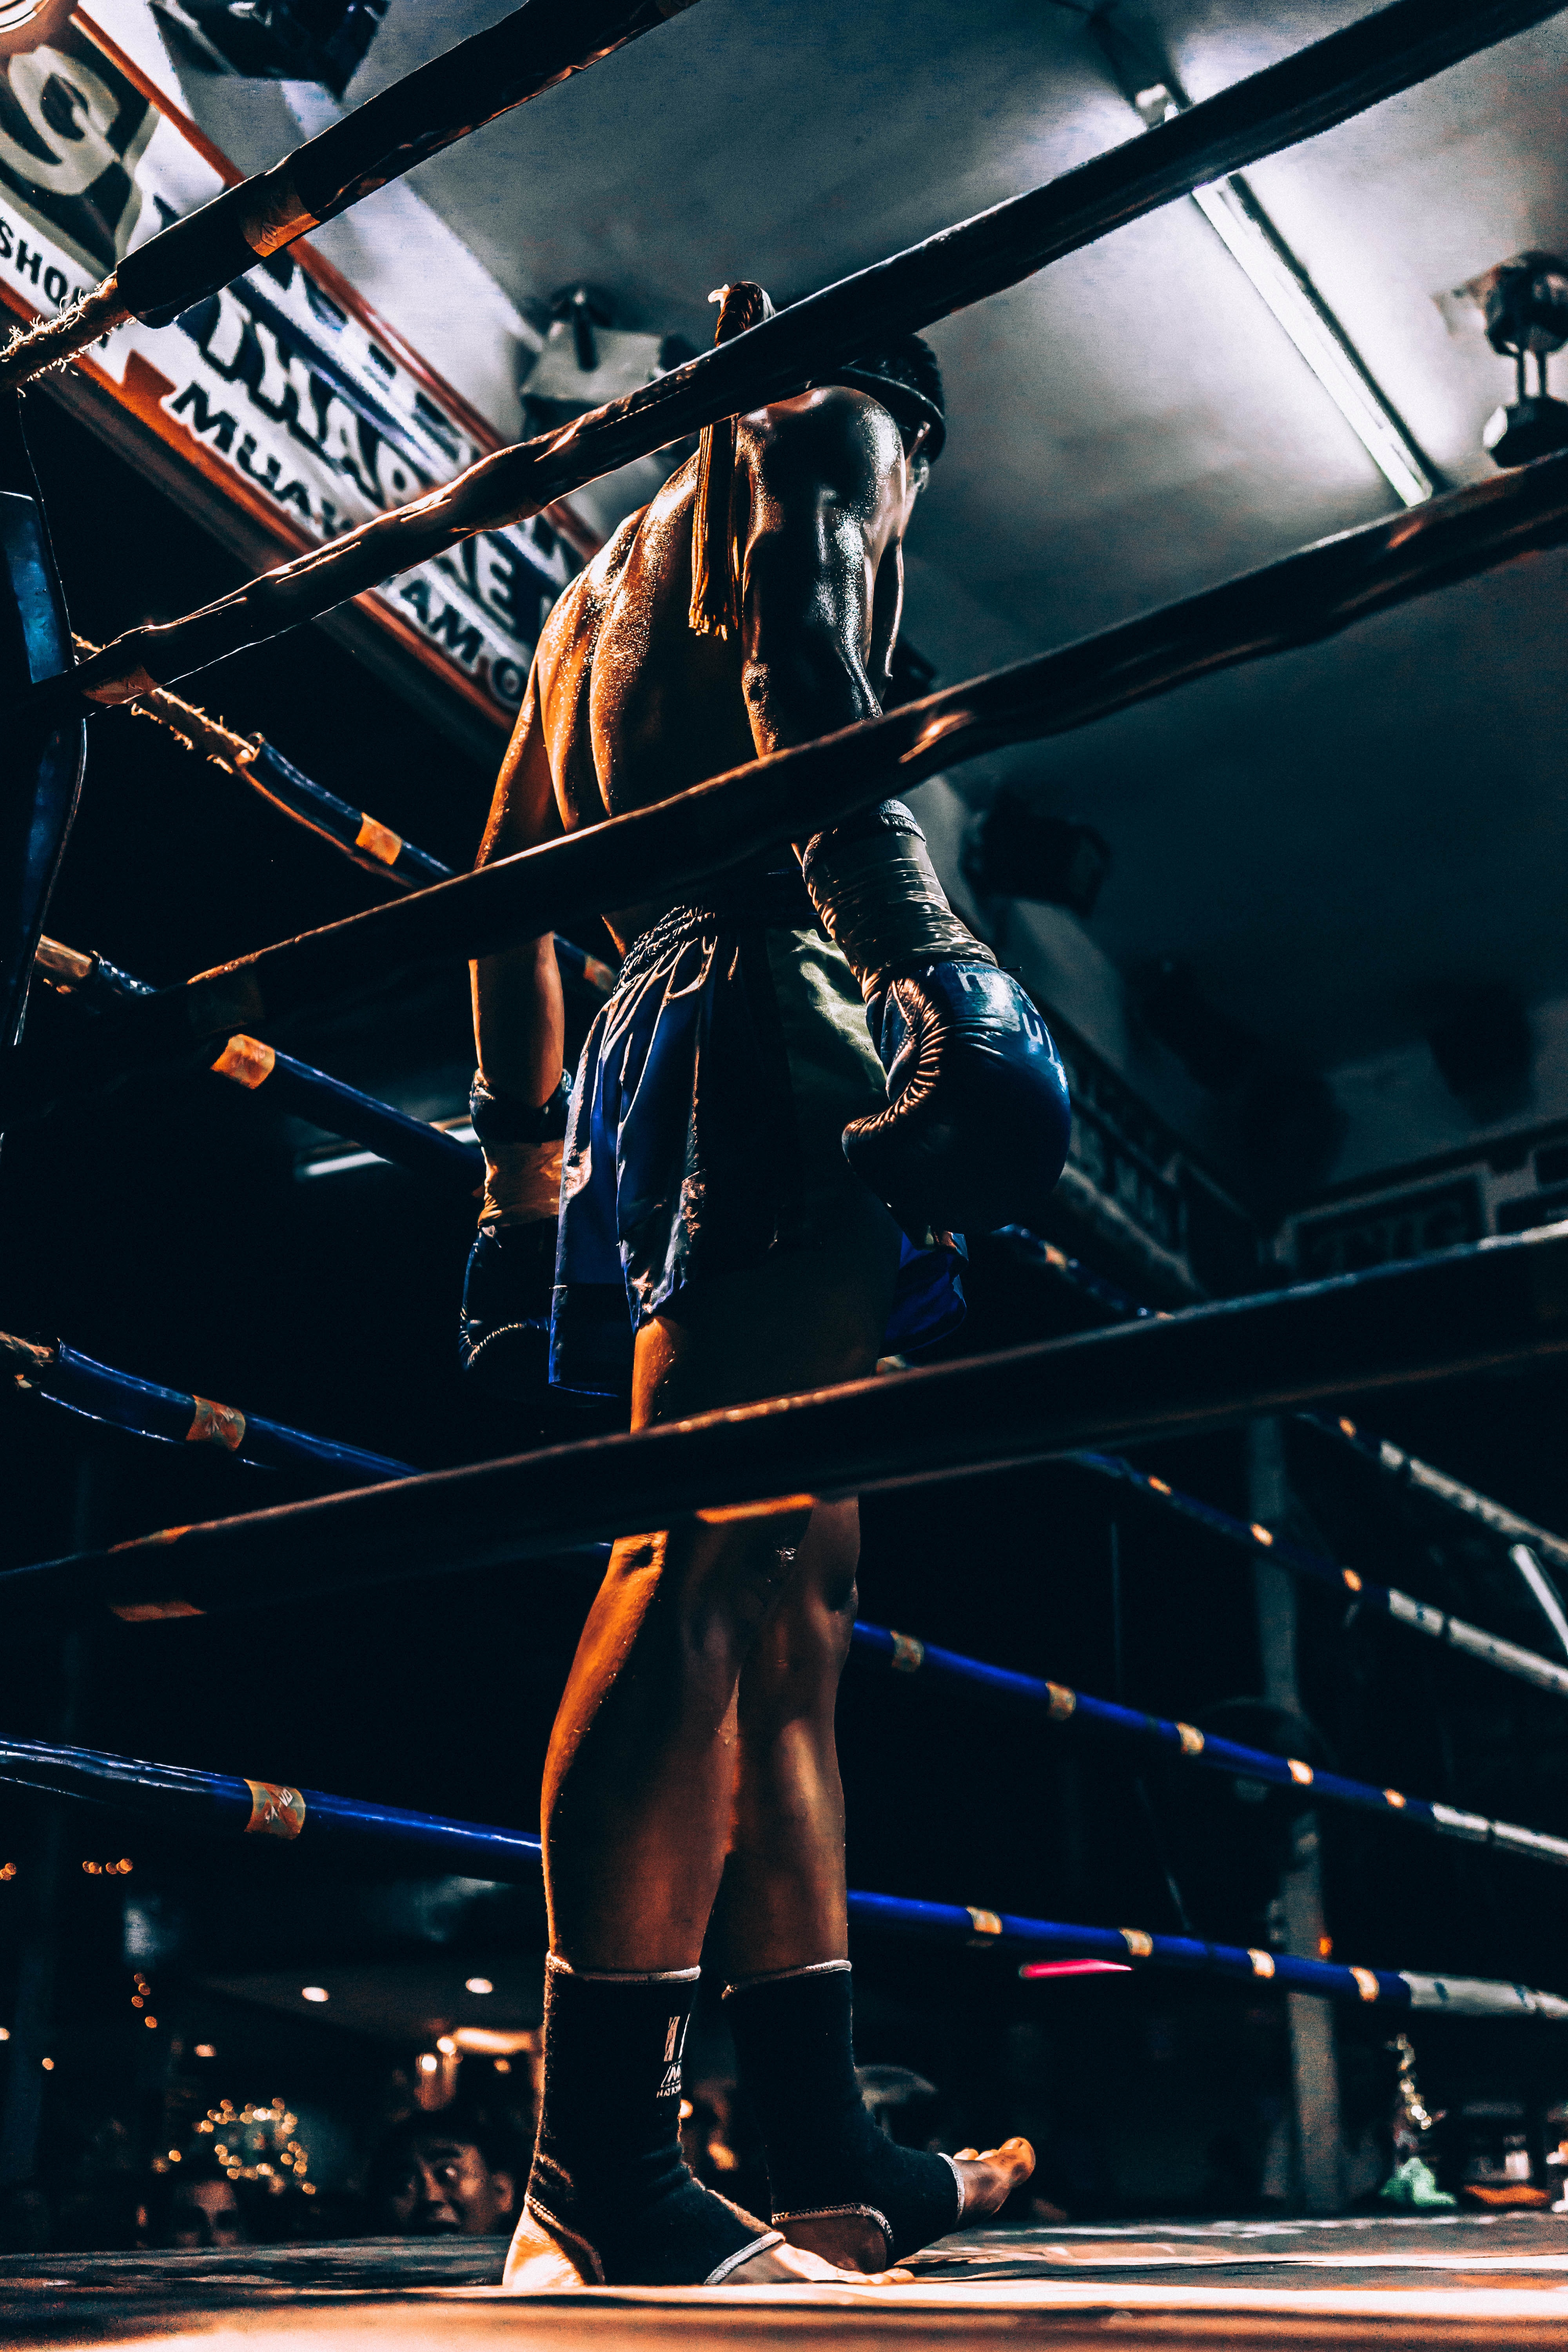 Male boxer stands tall in dark boxing ring